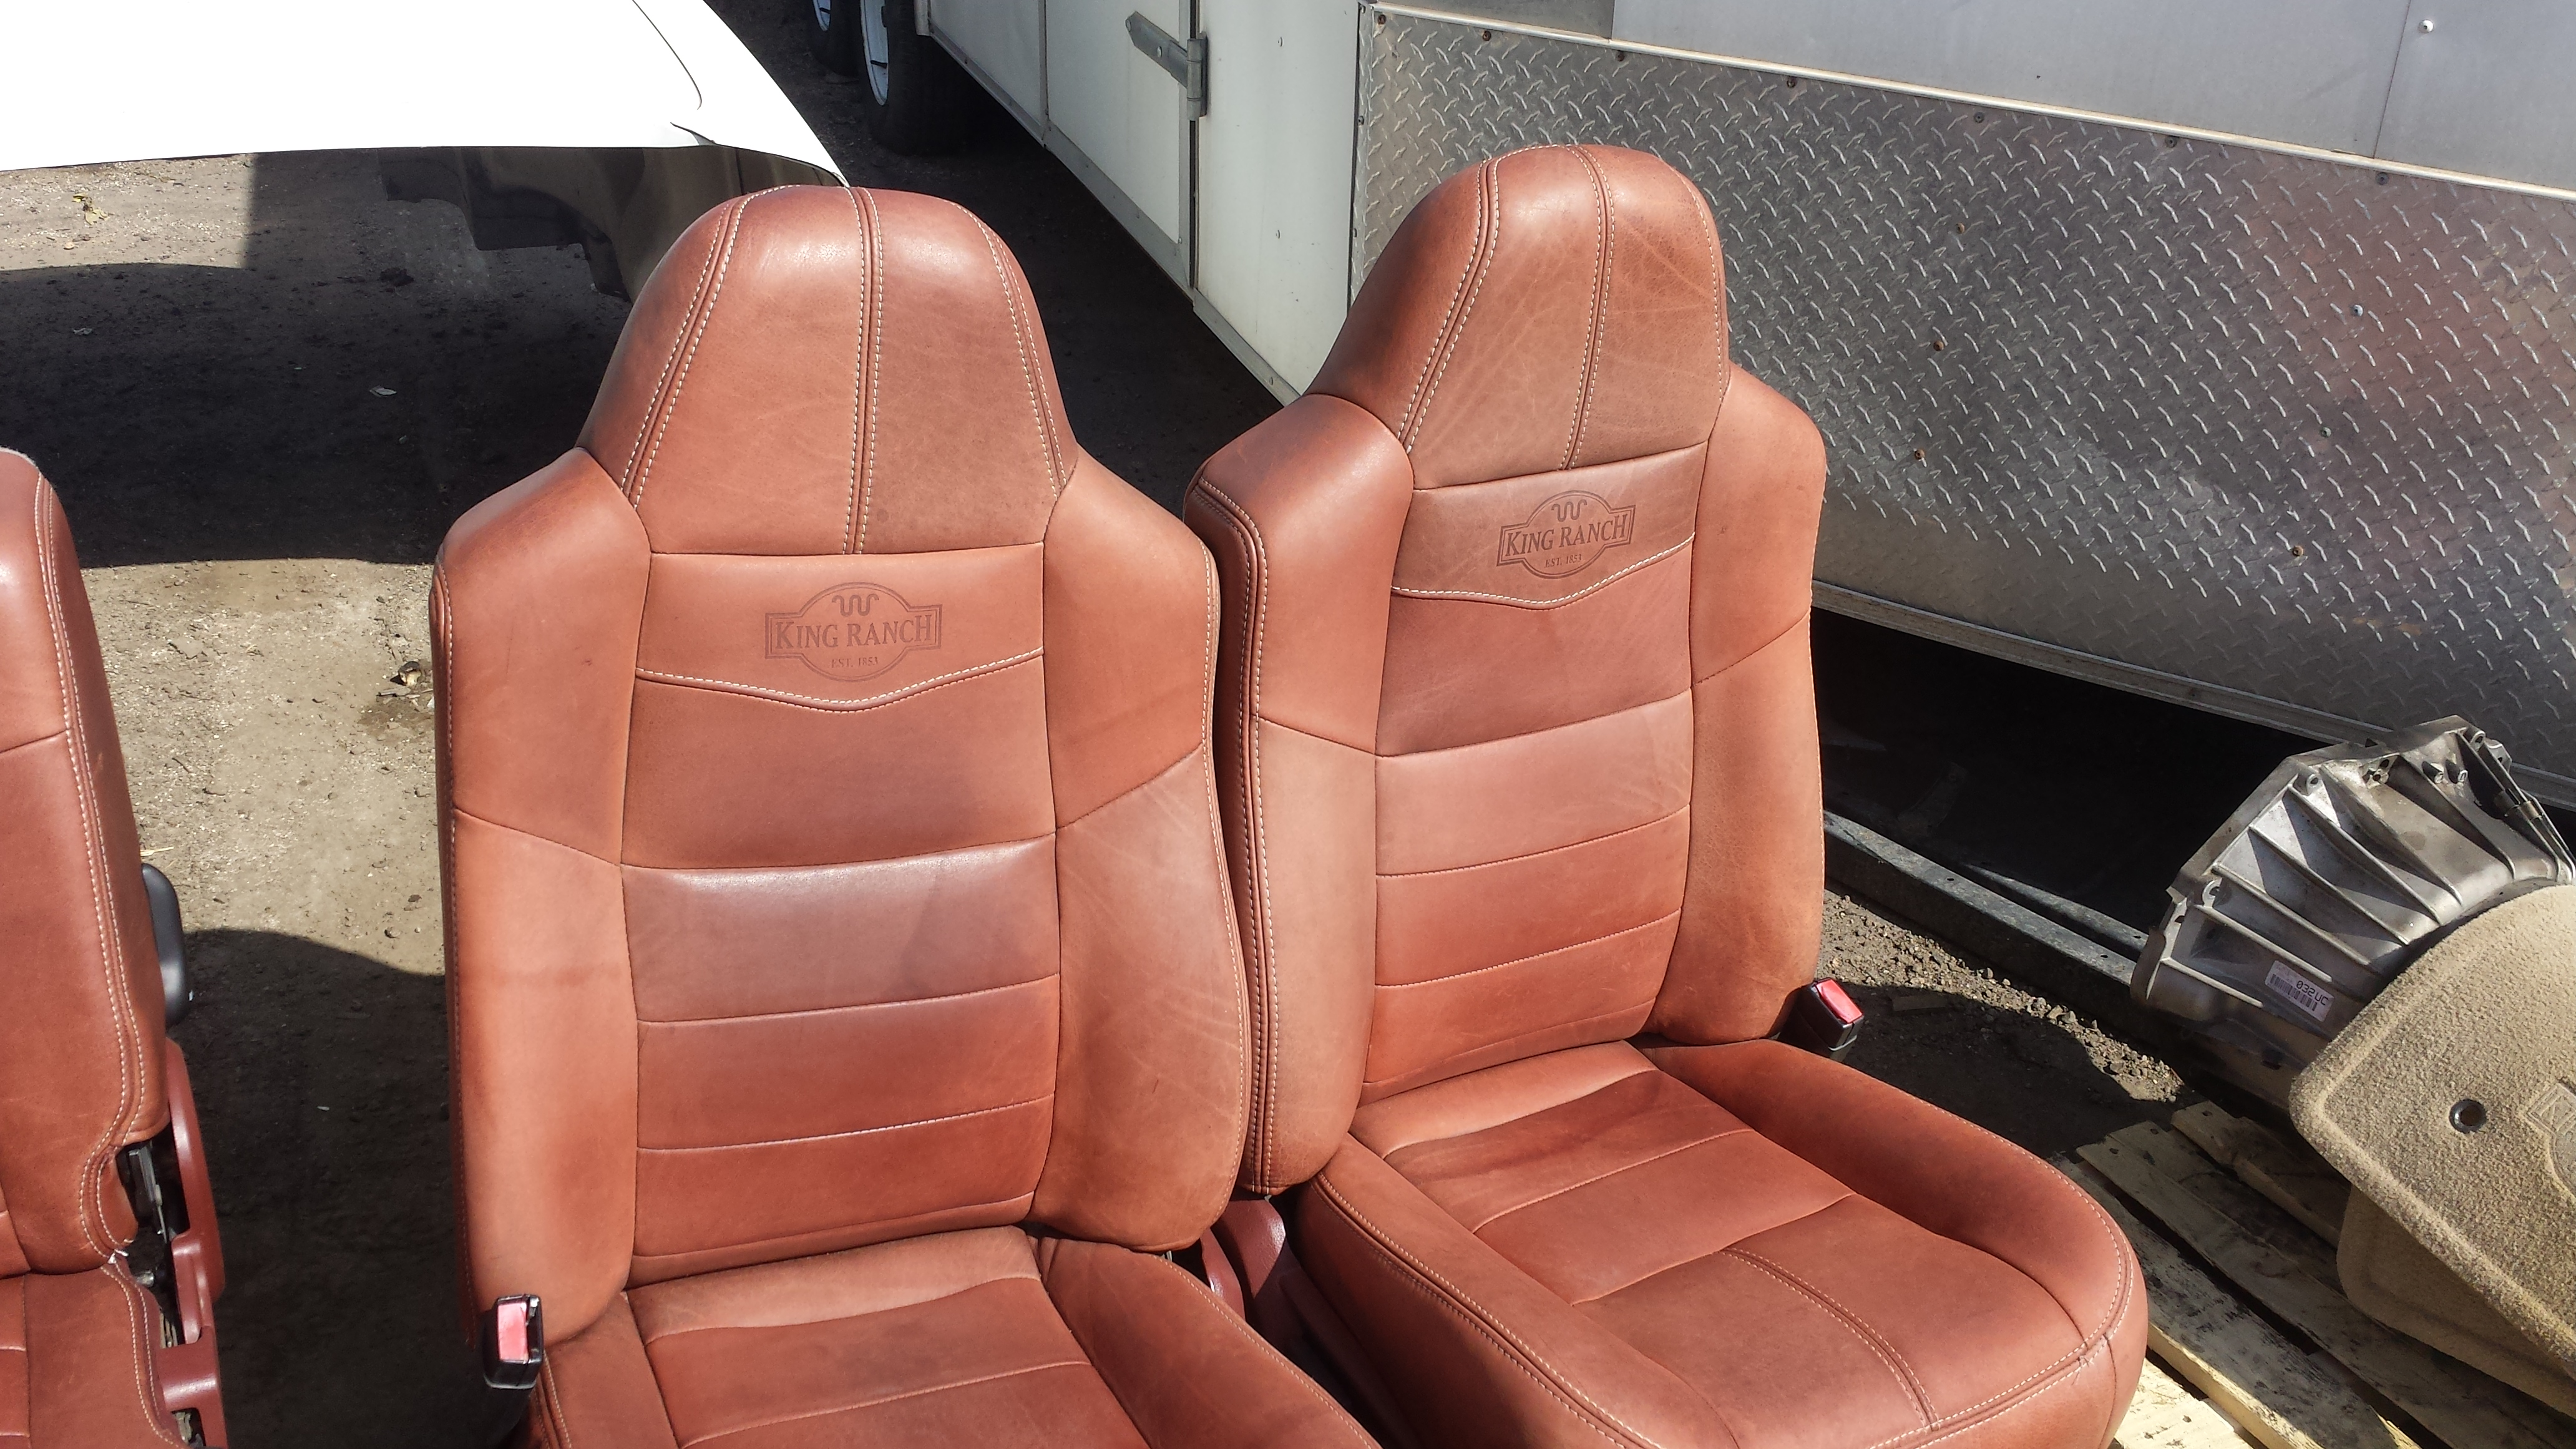 Yes i realize the leather is different but i would rather redo all my seats and use oem ford covers if possible